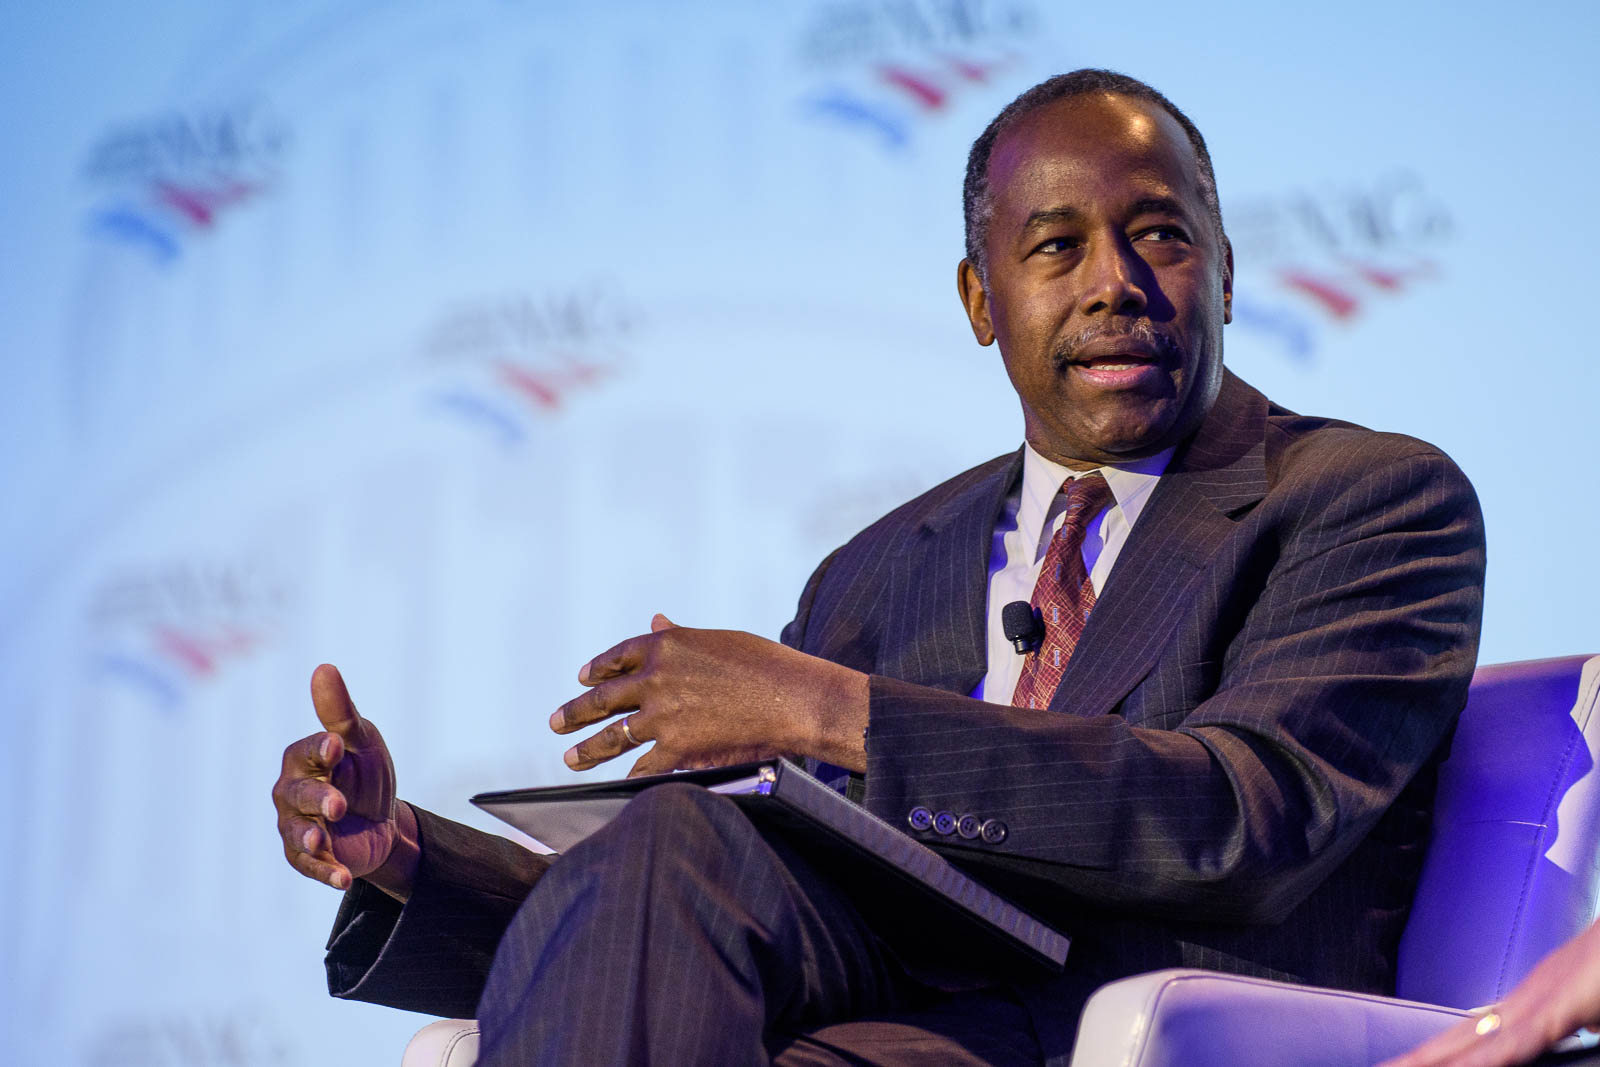 Secretary Carson discusses the benefits of Opportunity Zones